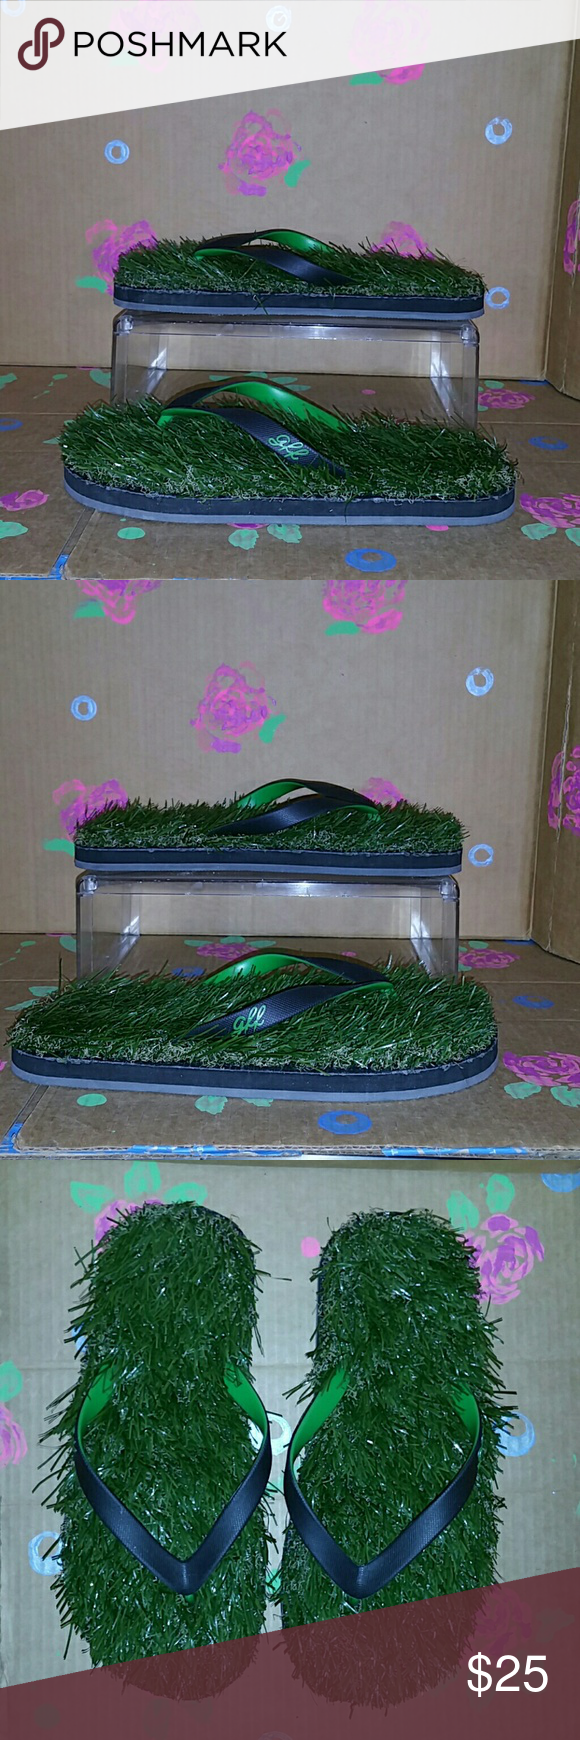 c98ae20fa GFF Grass Flip Flops Size 11 GFF Grass Flip Flops Size 11 Two Tone Straps  Pre-Owned In Excellent Like New Condition No Defects Noted GFF Shoes Sandals  ...